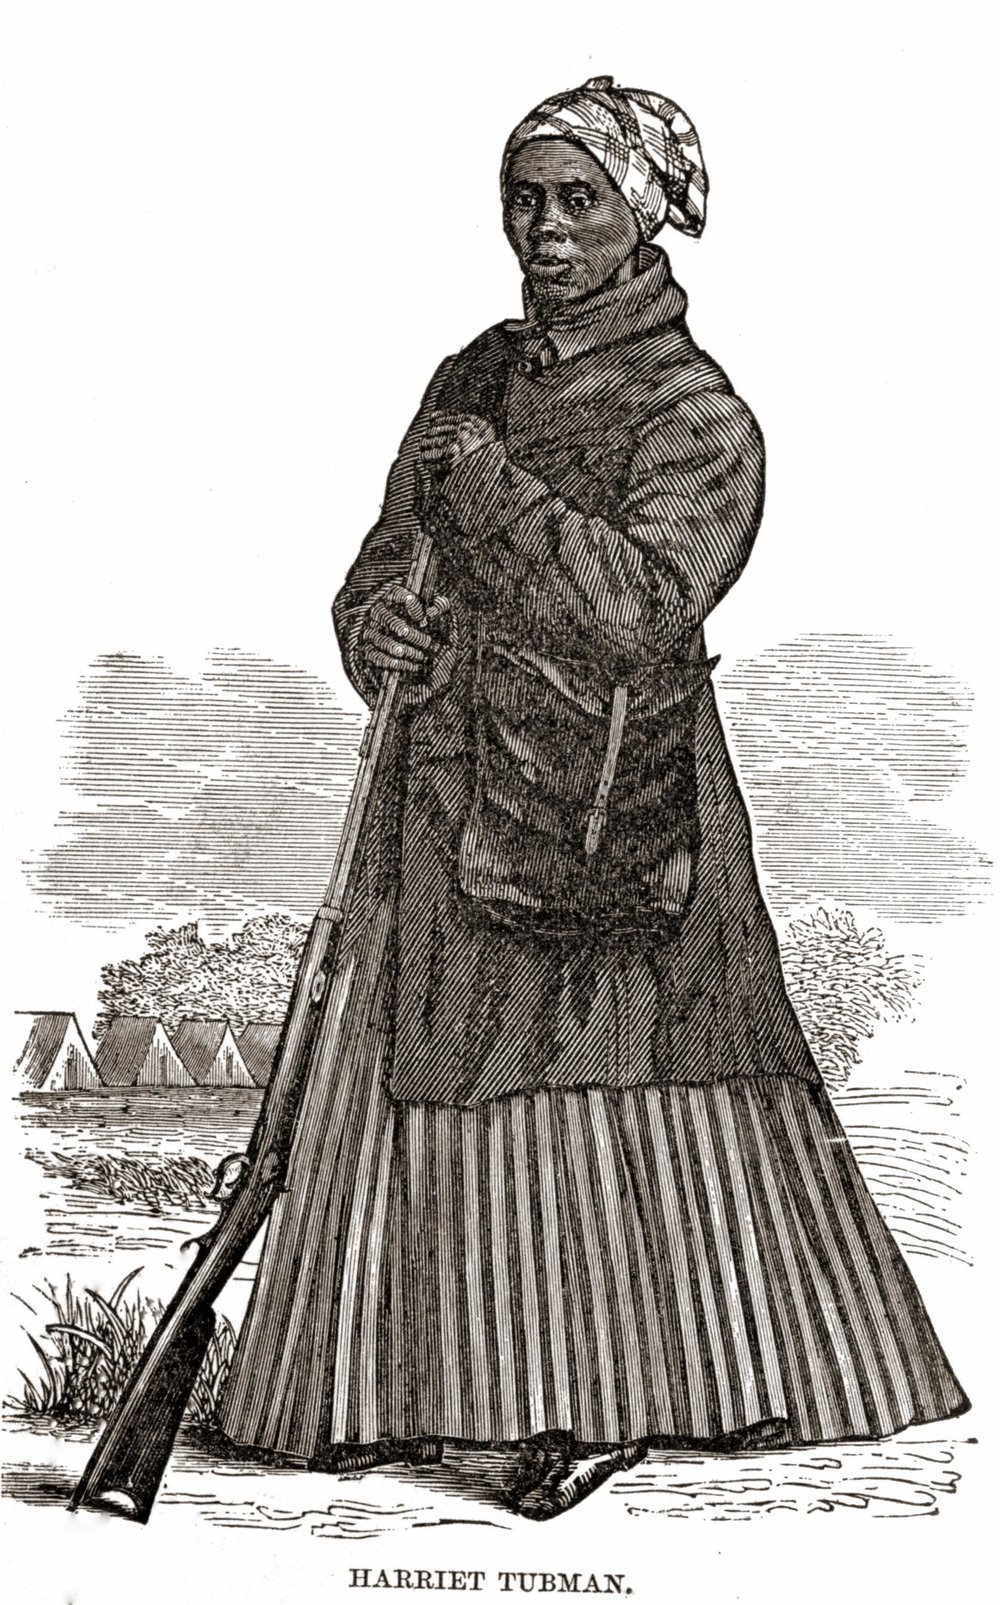 harriet_tubman_civil_war_woodcut1.jpg